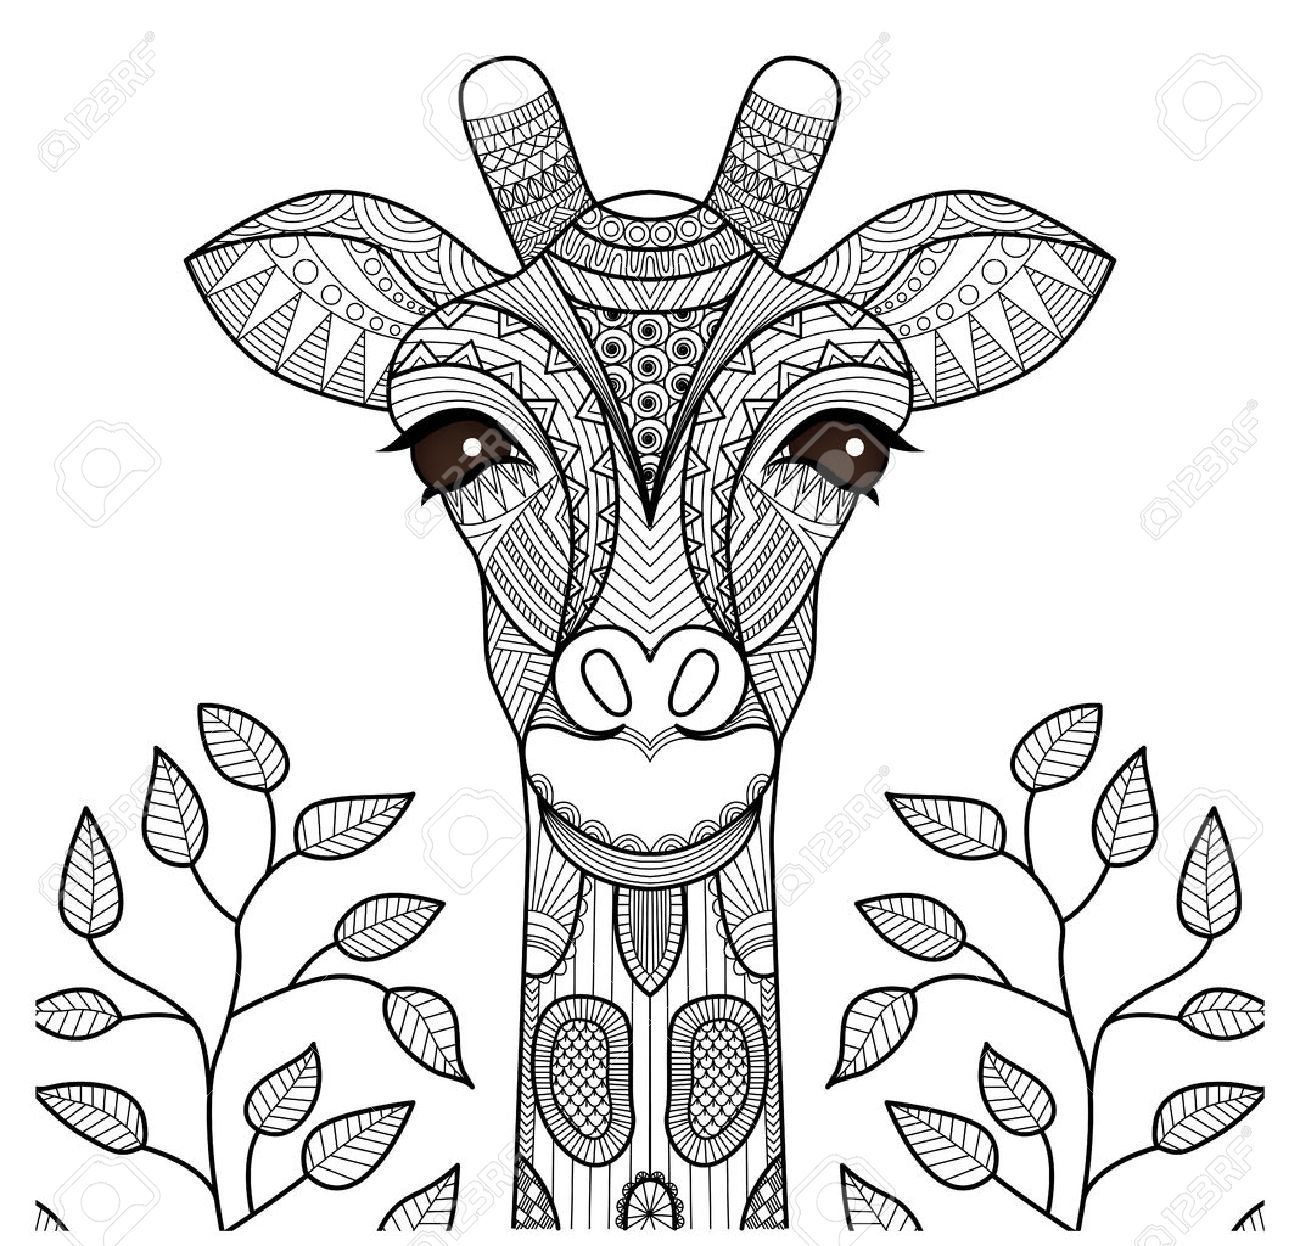 Excellent Vector Zentangle Giraffe Head For Coloring Page Shirt Design And So On With Pages